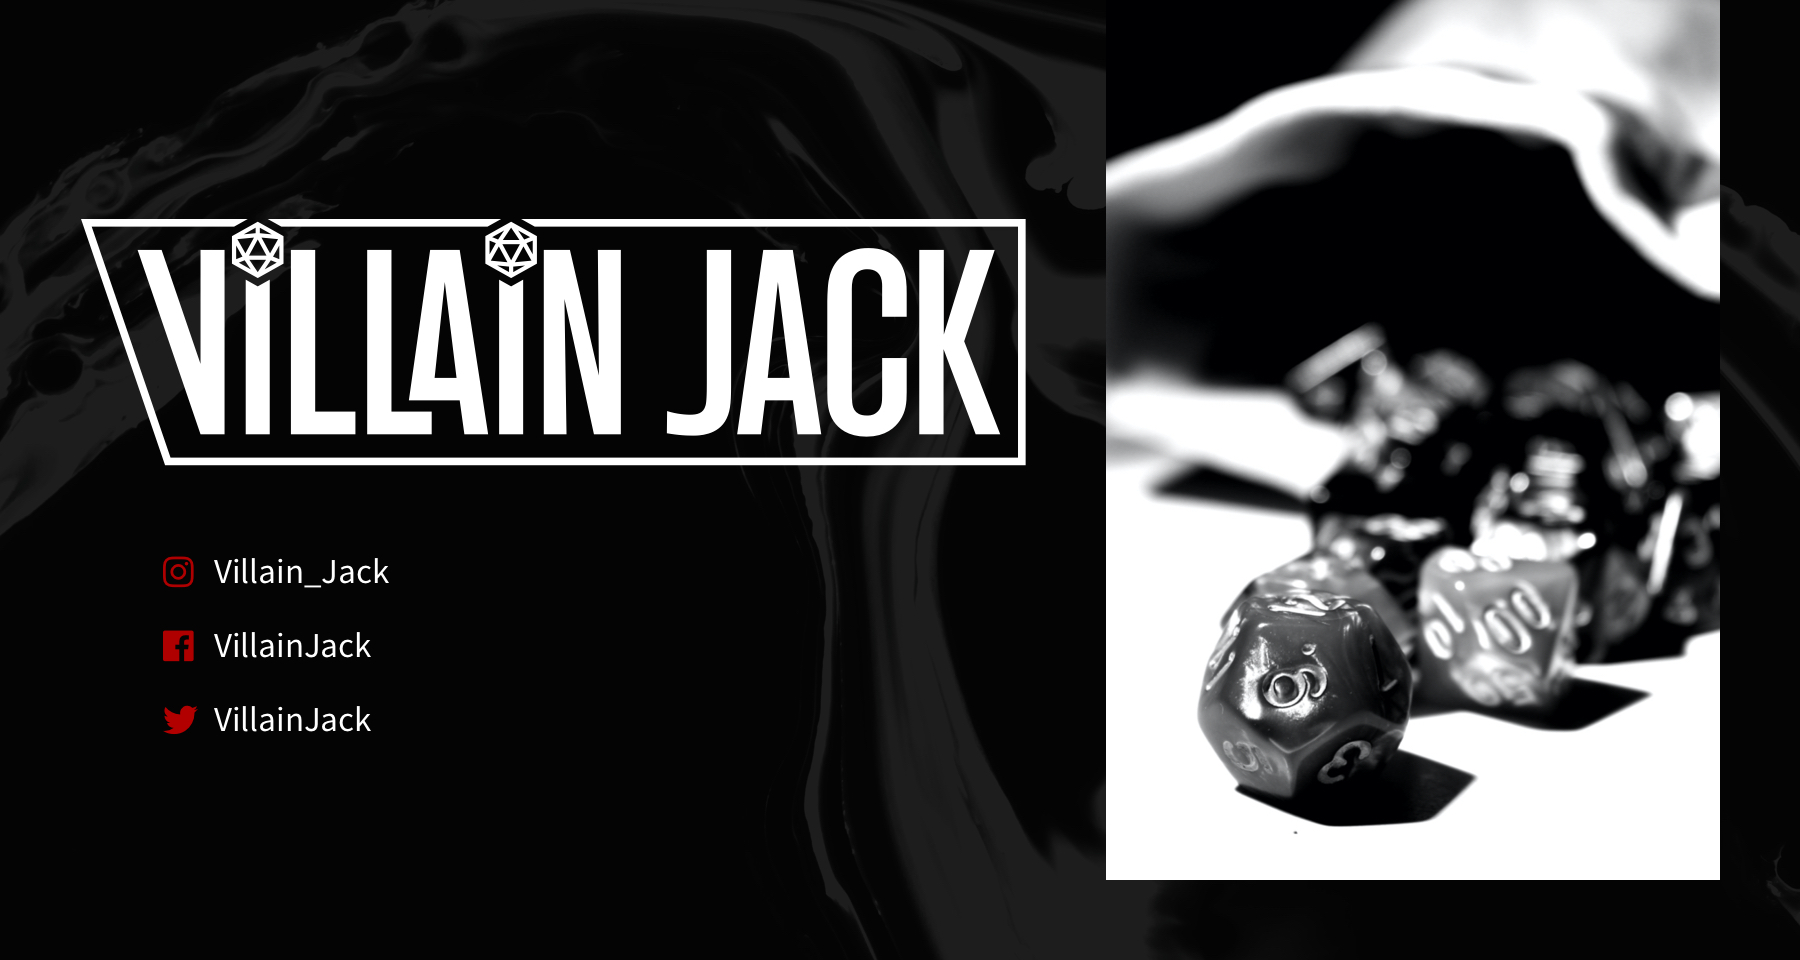 Villain Jack Header with dice in a dice bag